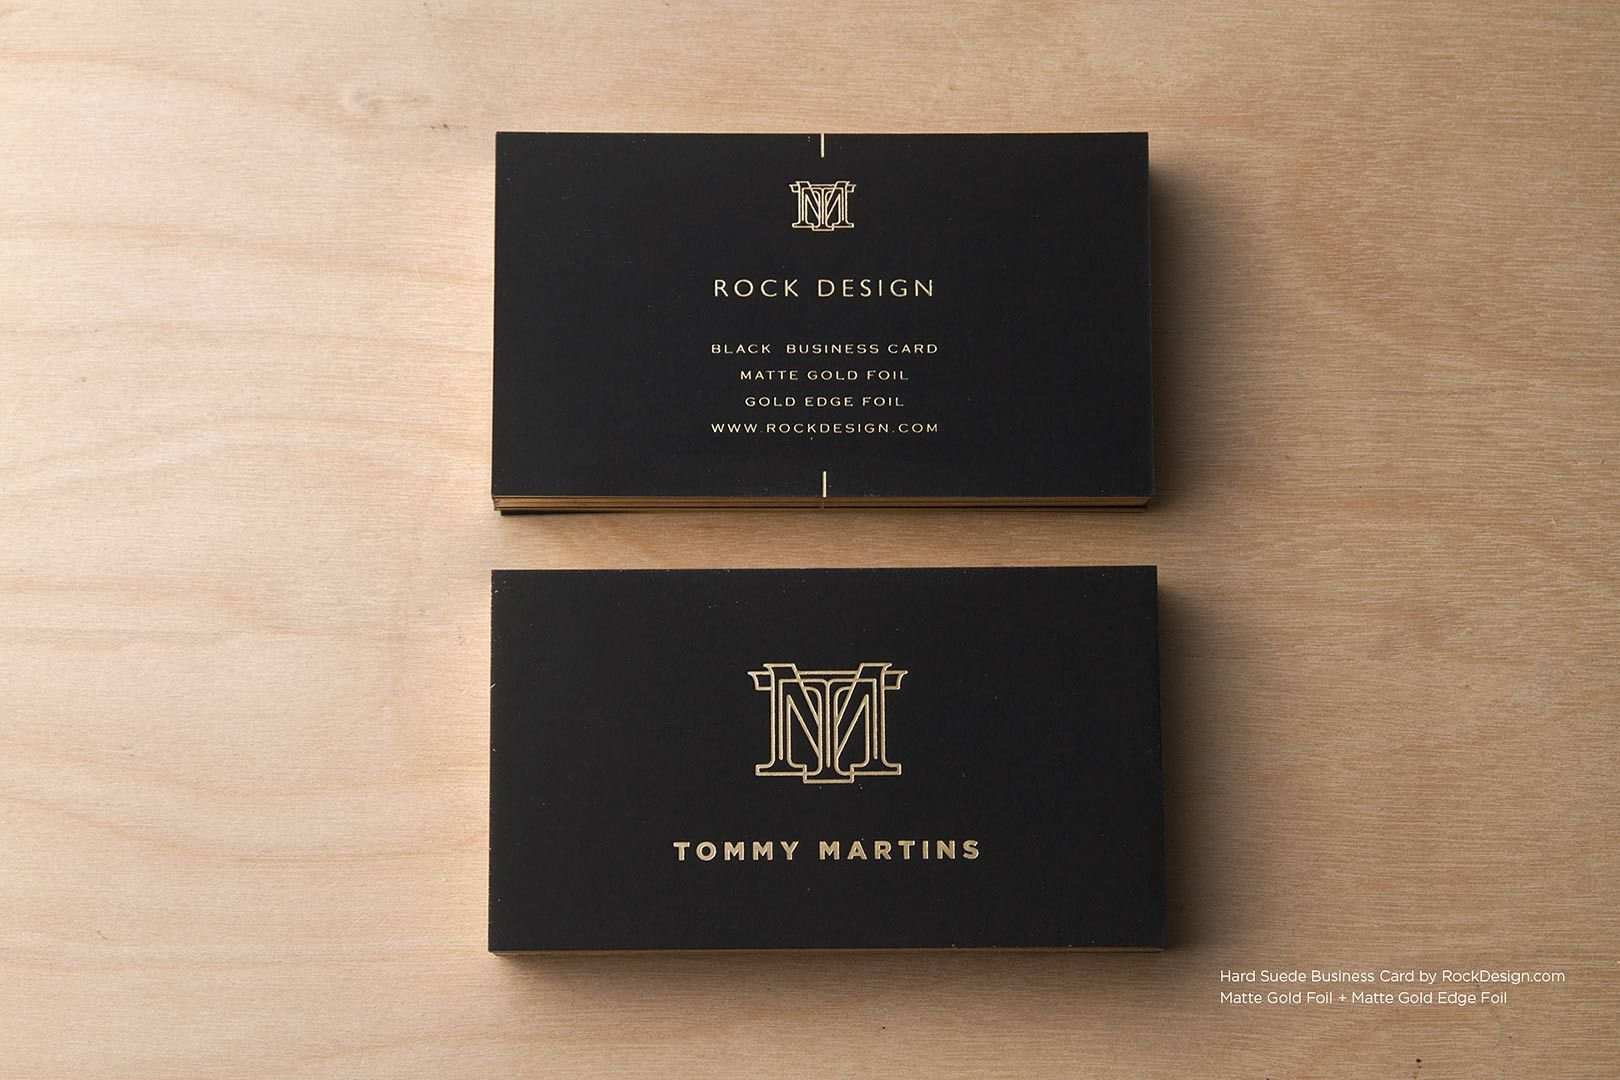 Hard suede business cards rockdesign luxury business for Upscale business cards